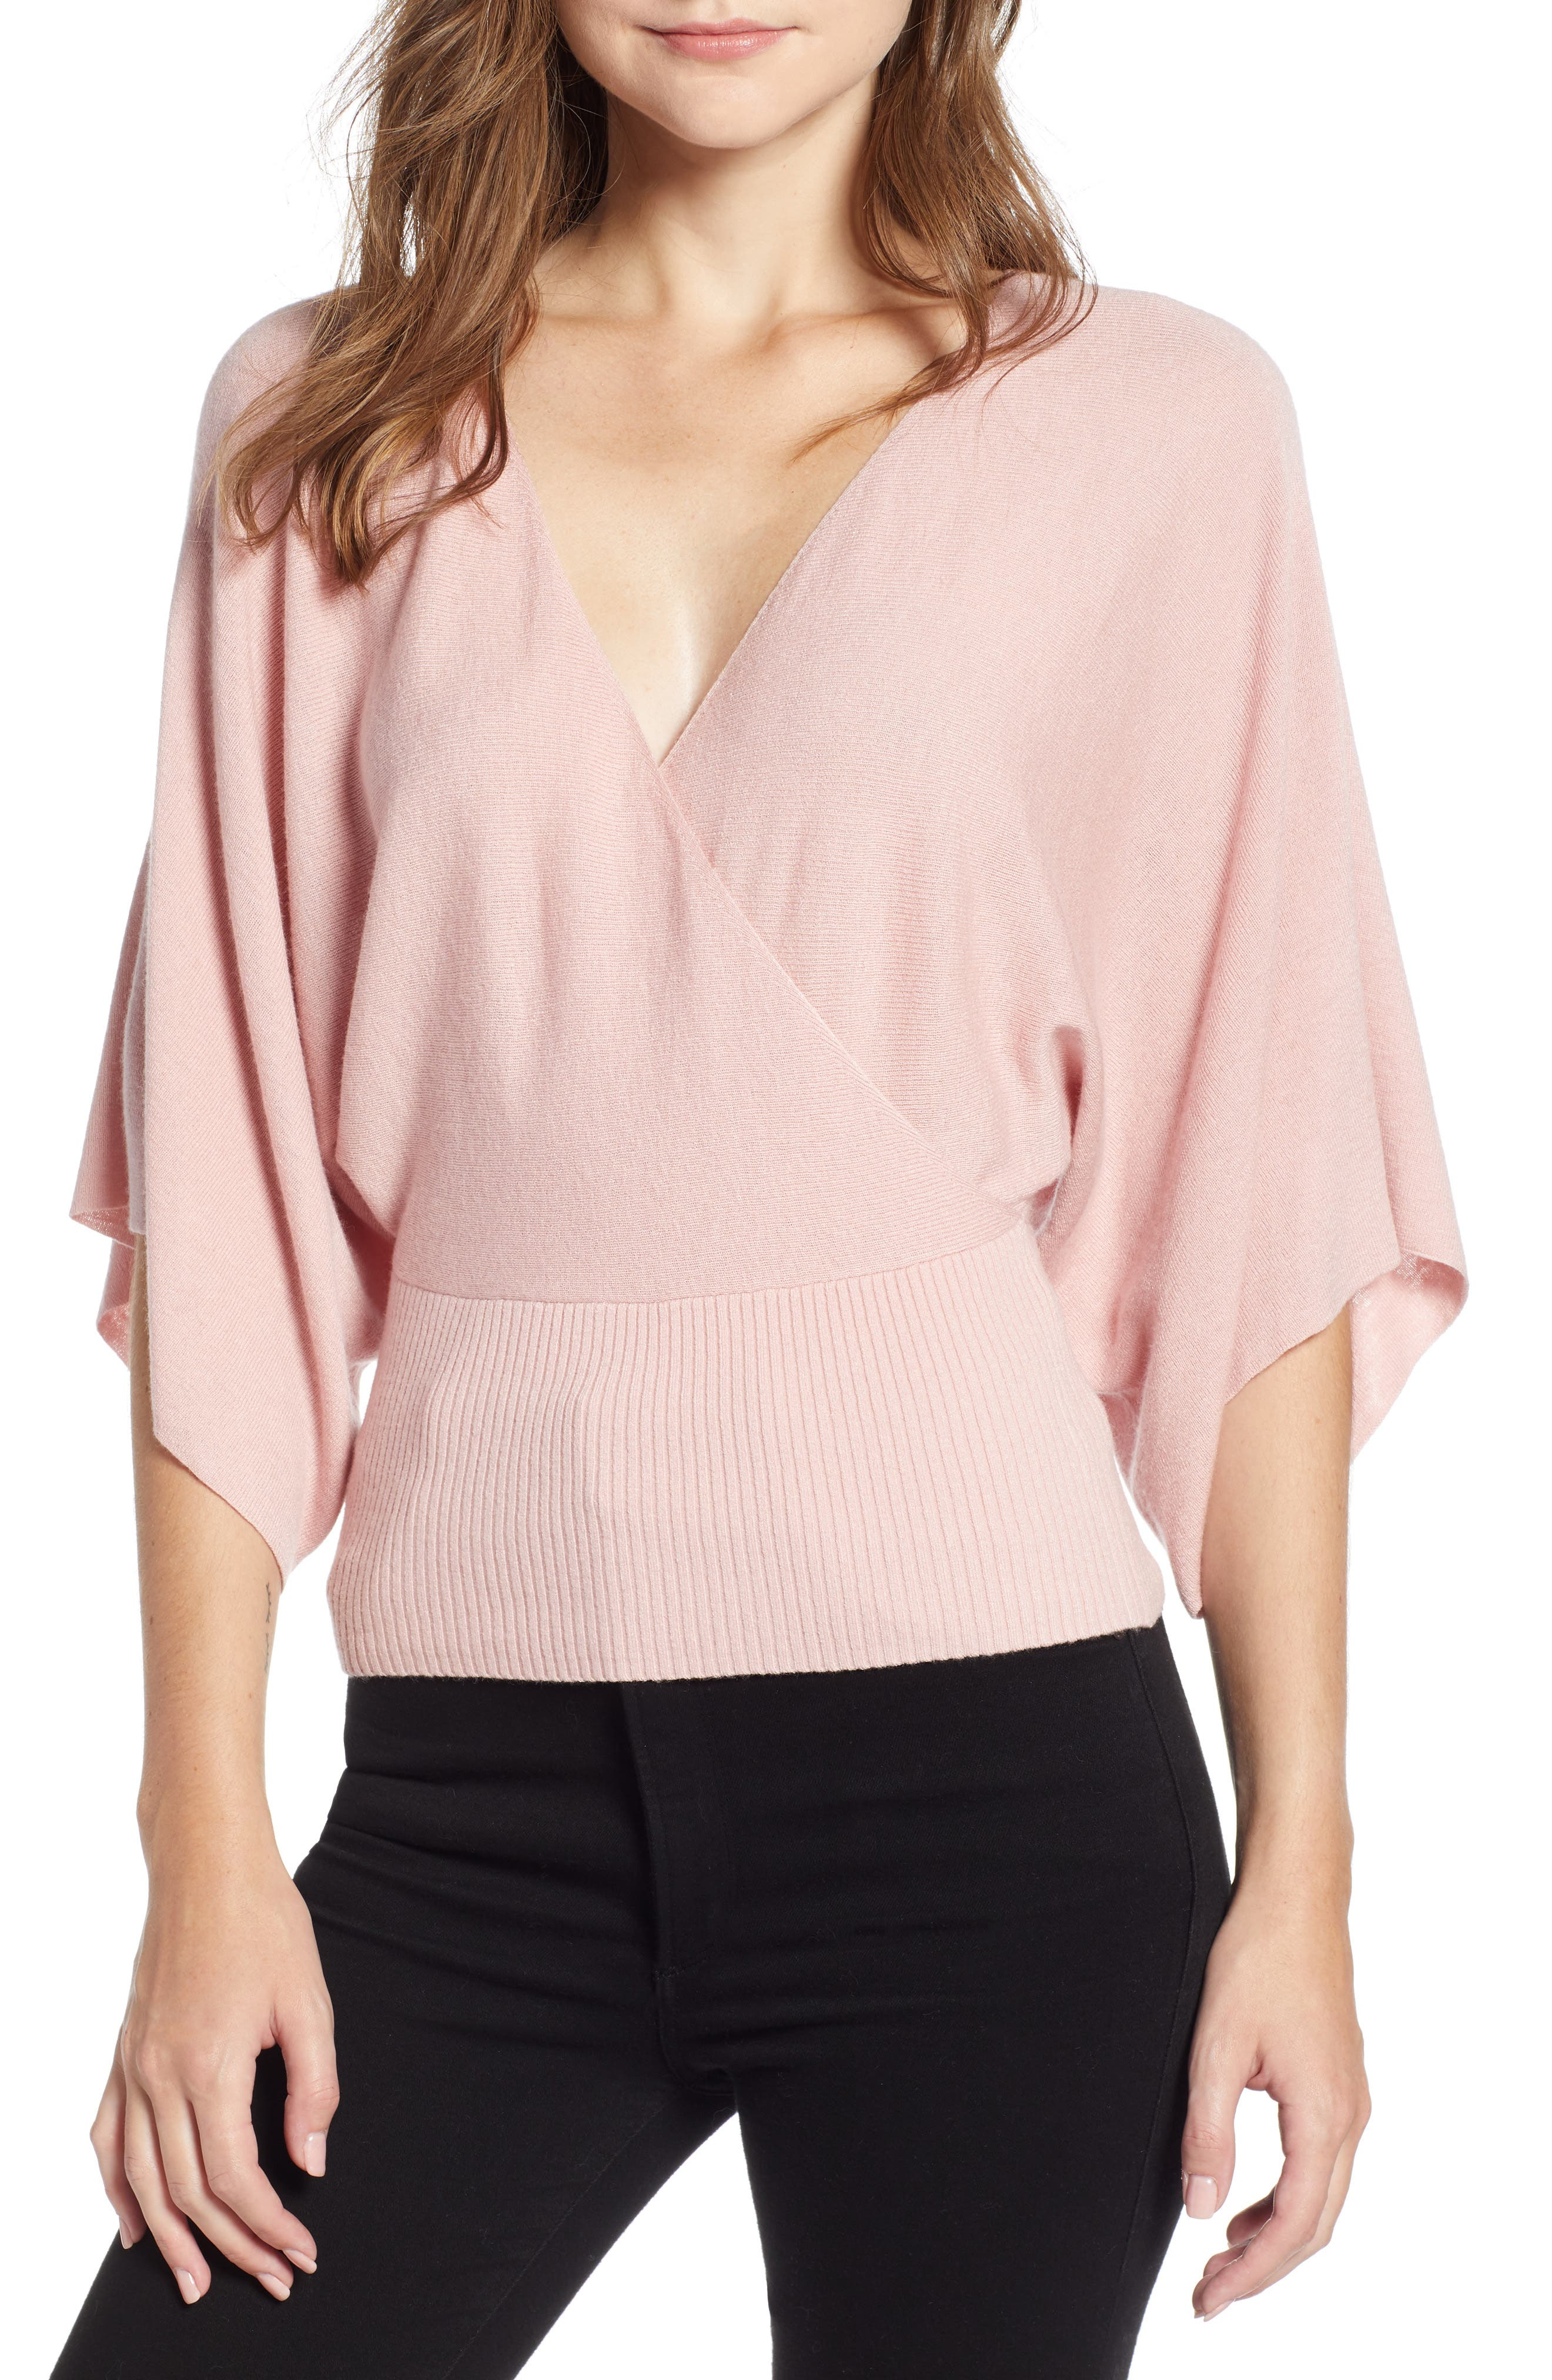 BAILEY44 Eye In The Sky Faux-Wrap Sweater in Cherry Blossom